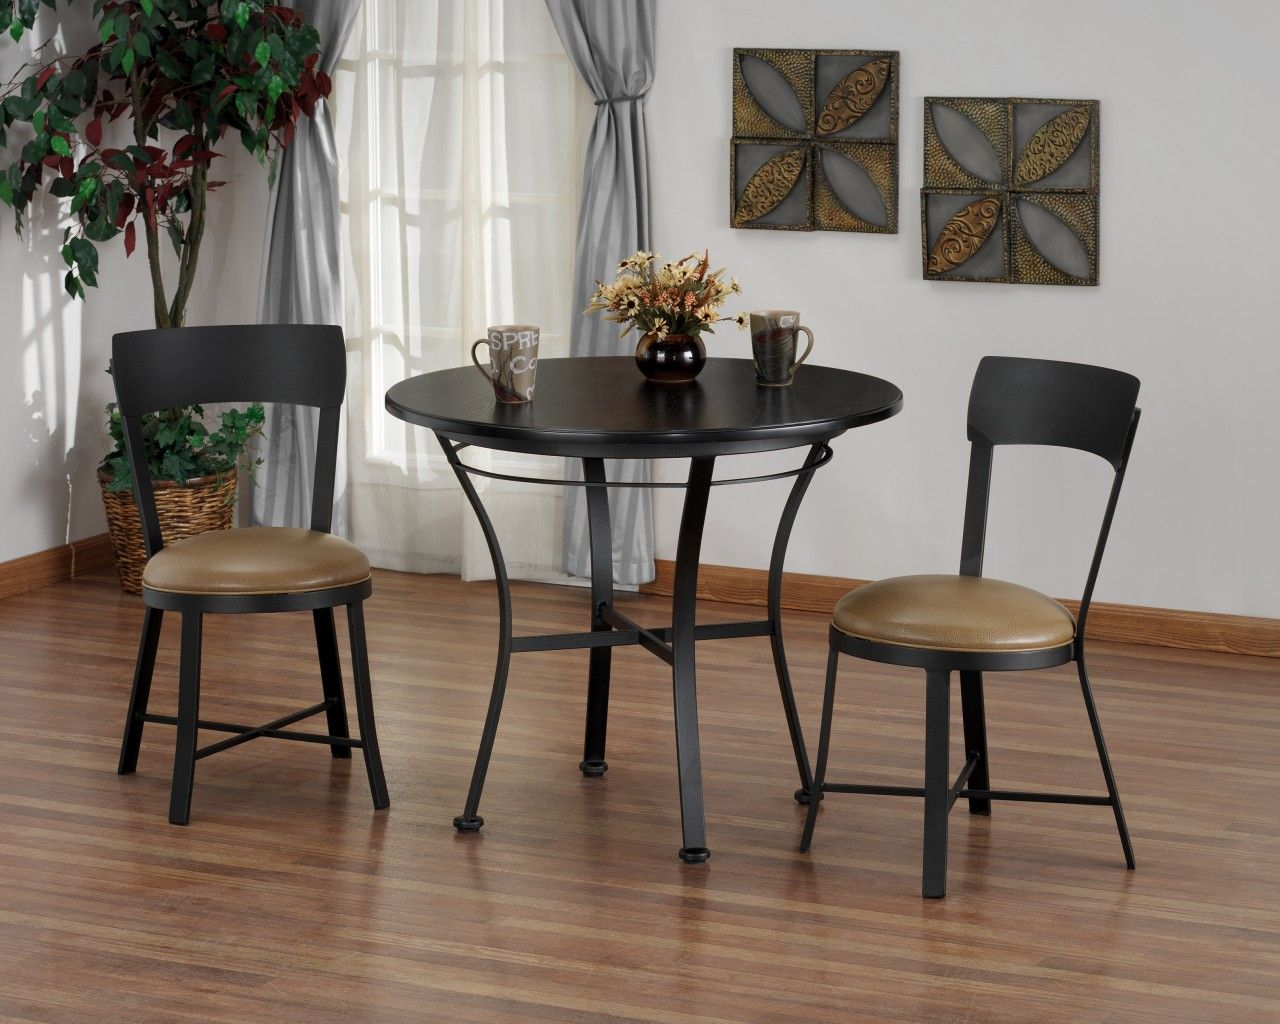 indoor bistro table and chairs in uk bistro chair and kitchen bistro table set bistro style kitchen table sets